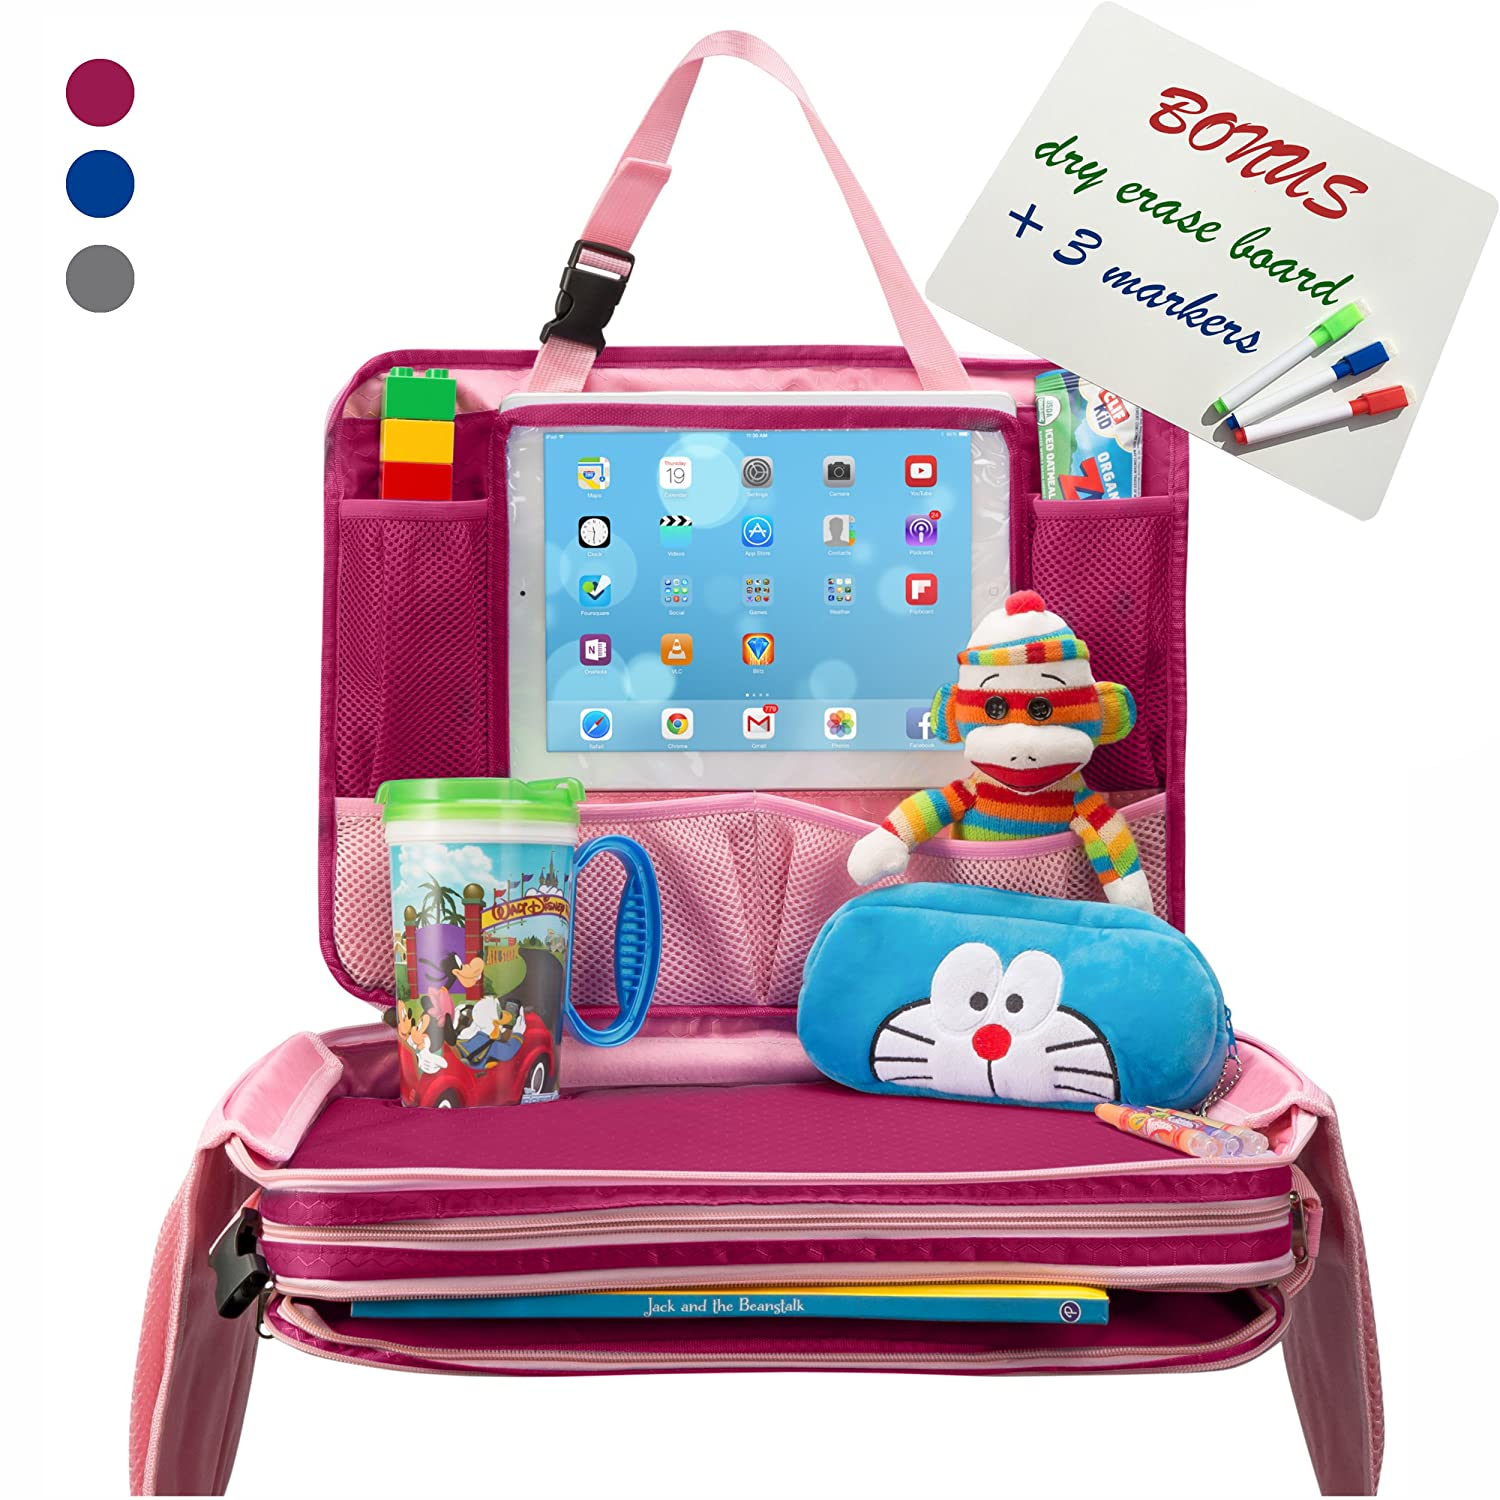 Kids Travel Tray - Detachable Top 4-in-1 Car Organizer w Tablet Holder - Play Snack Lap Table - On The Go Activity Desk for Children Toddlers - Backseat Storage - Stroller Accessories w Extra Bonus TravelMe